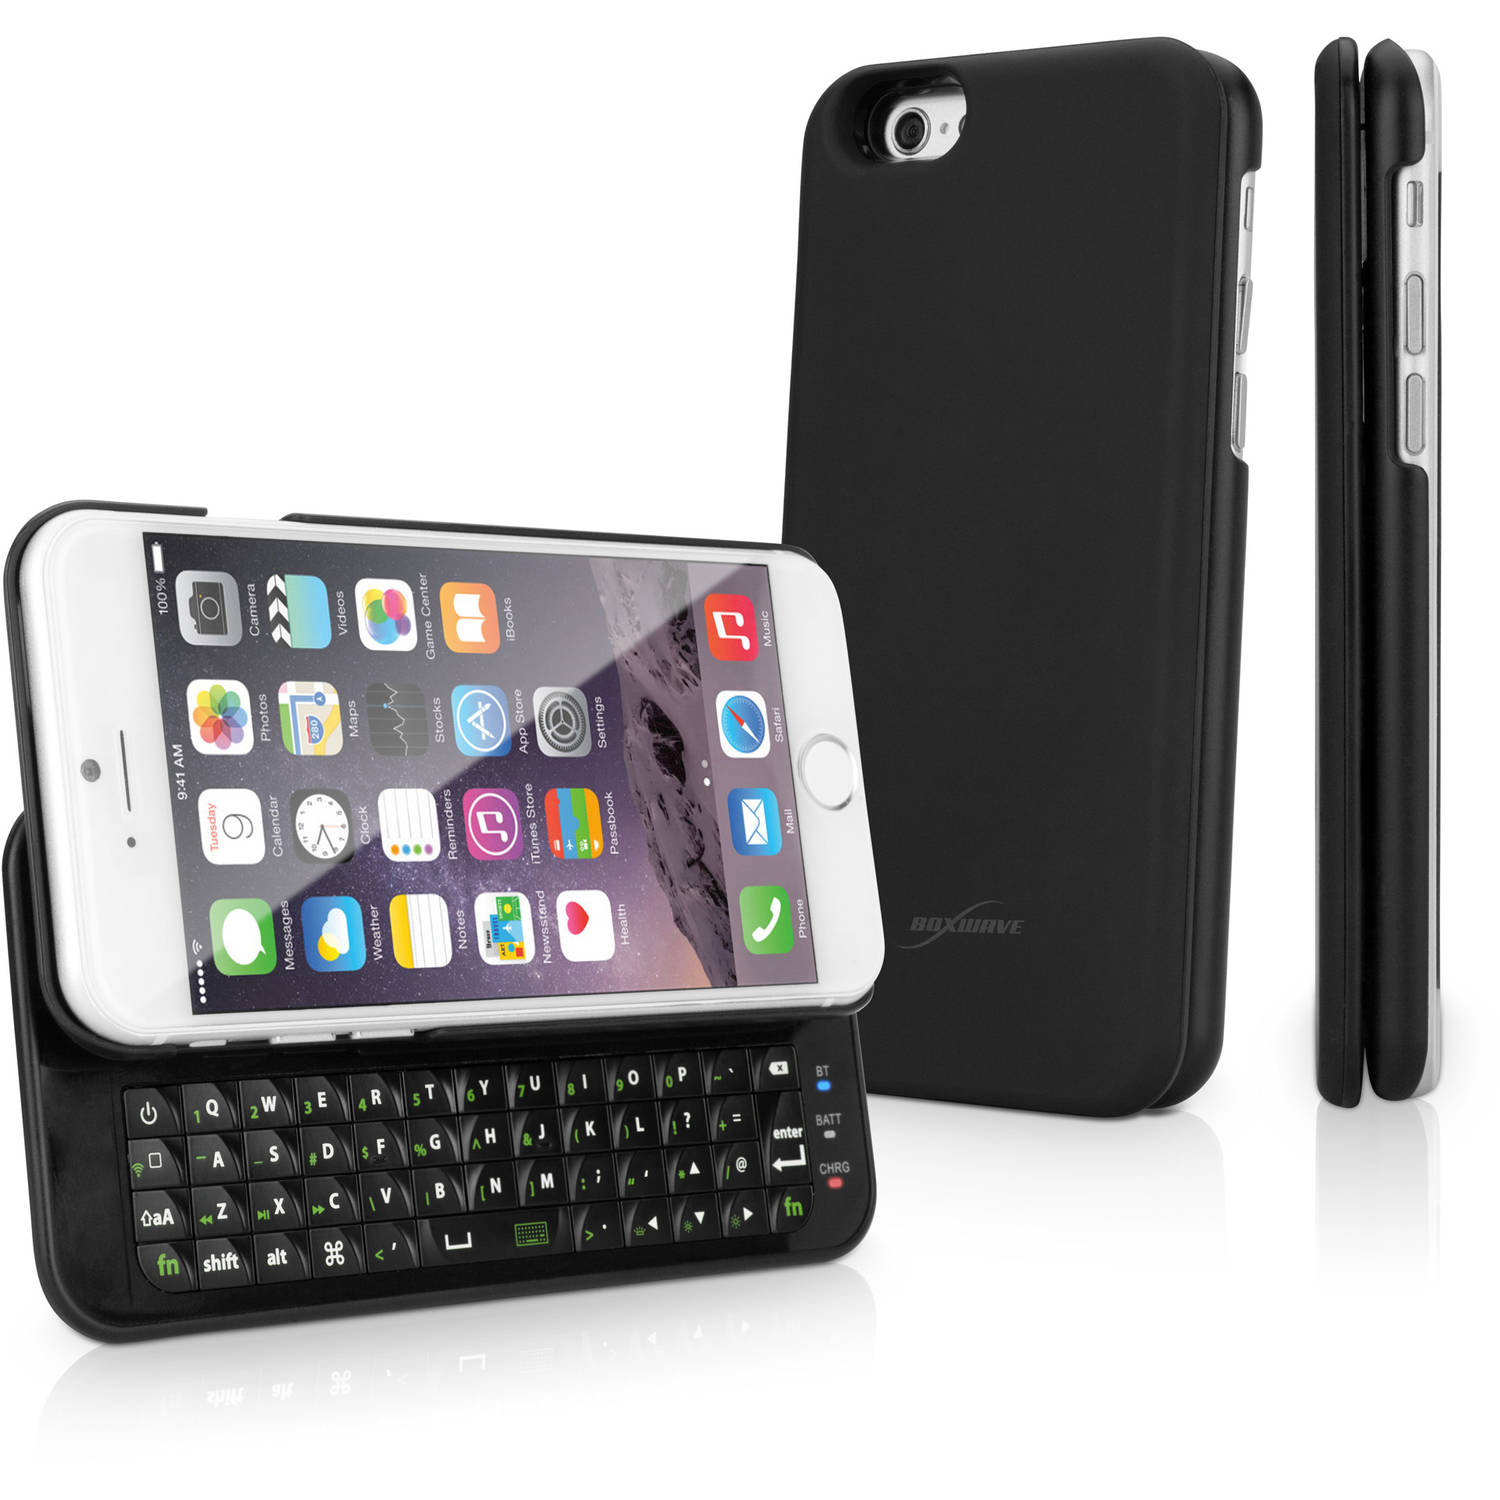 BoxWave Keyboard Buddy Case for Apple iPhone 6/6s